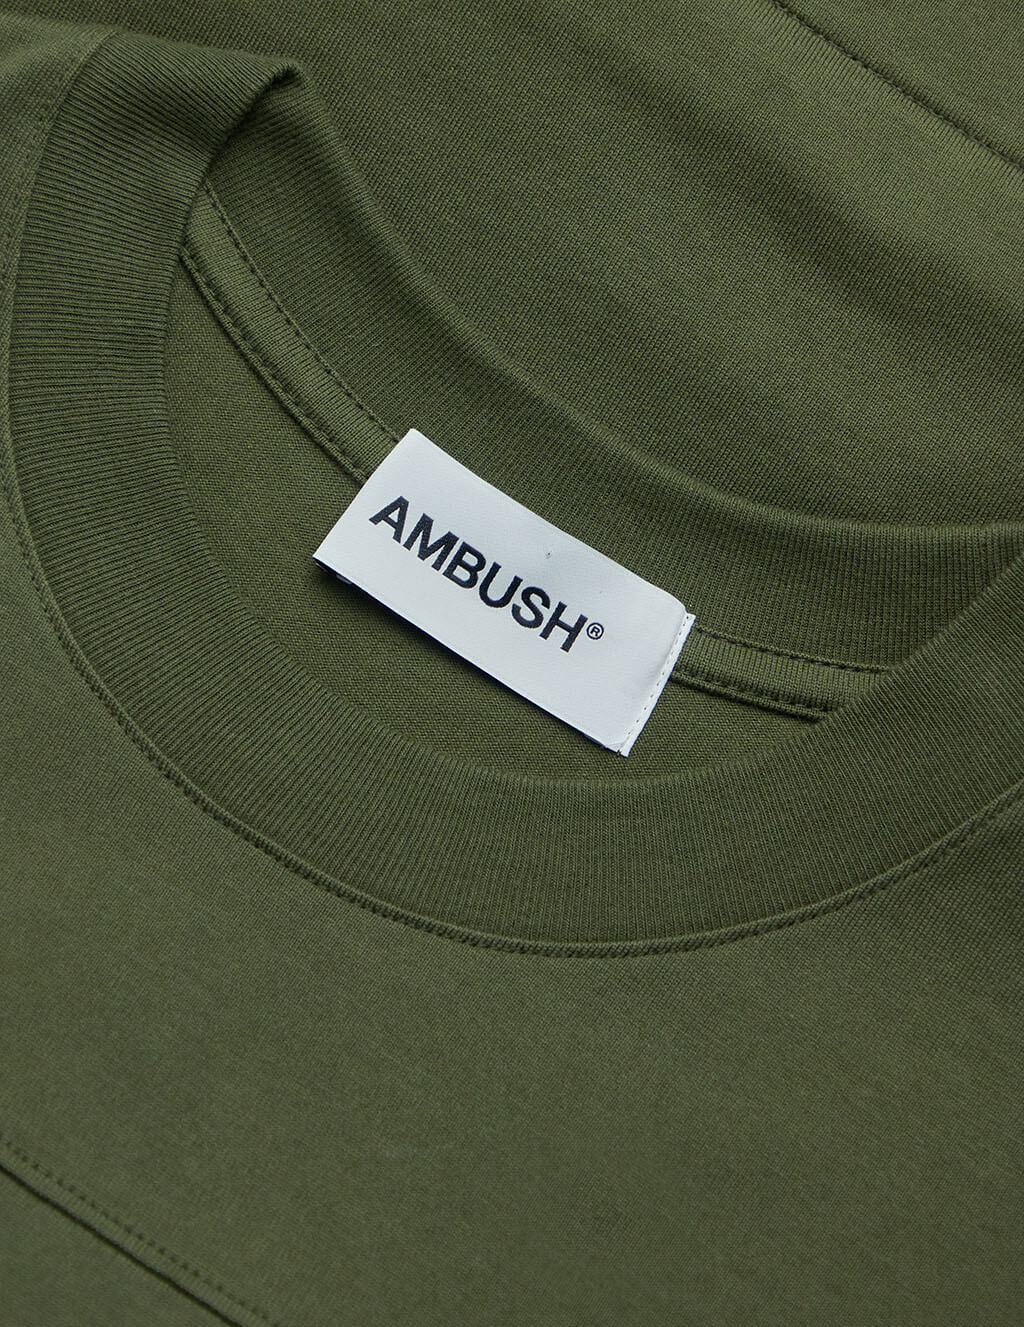 AMBUSH Men's Dark Green New Waist Pocket T-Shirt BMAA004F20JER0015900